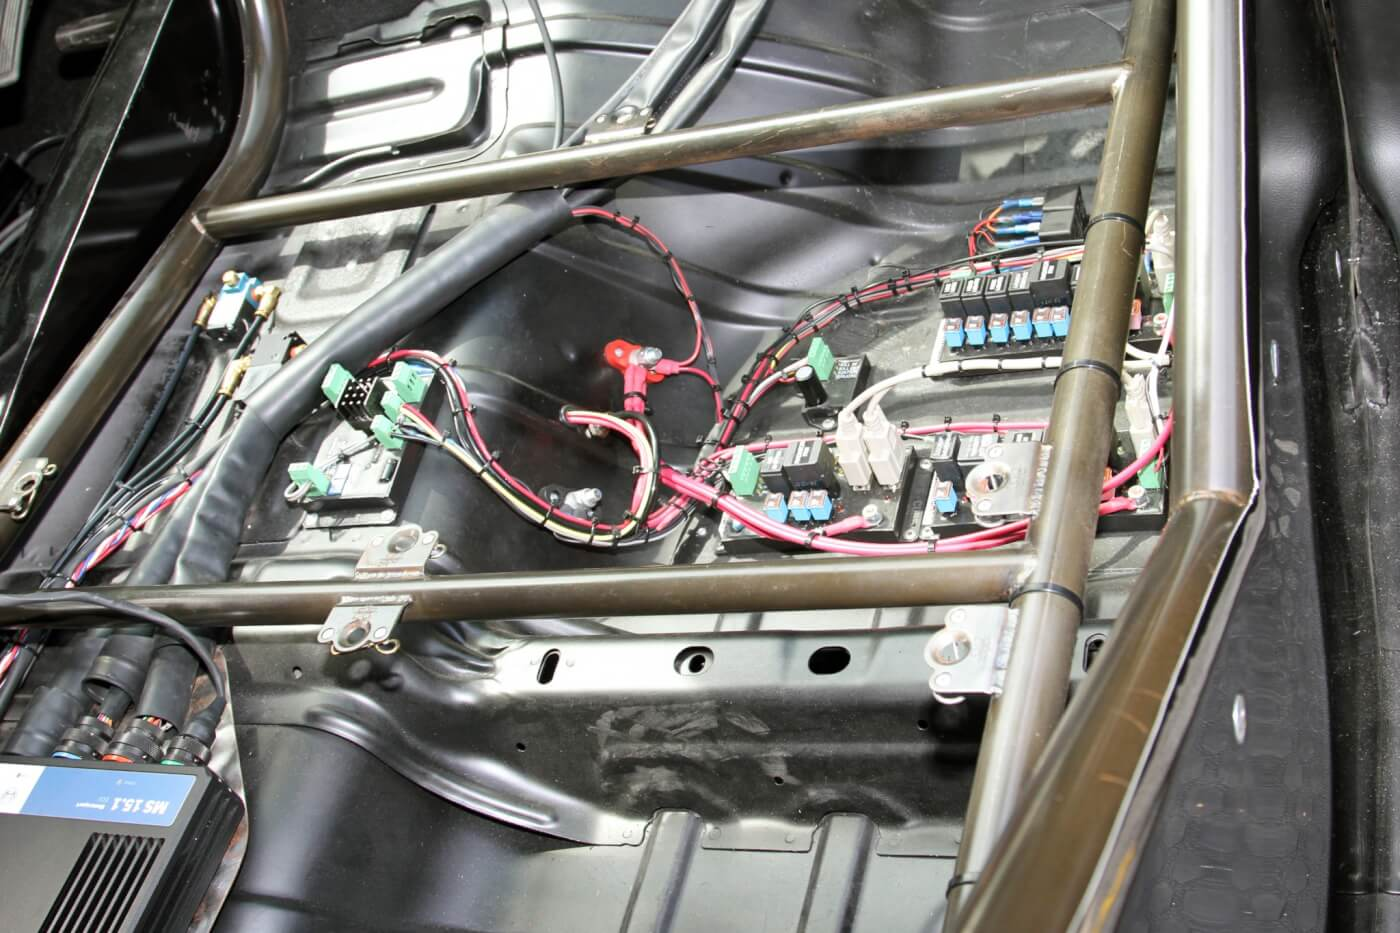 The Spaghetti Menders wiring harness and Bosch ECU combine to handle all electronic controls in the truck, including the engine, transmission and staging system, as well as other functions like shifting.